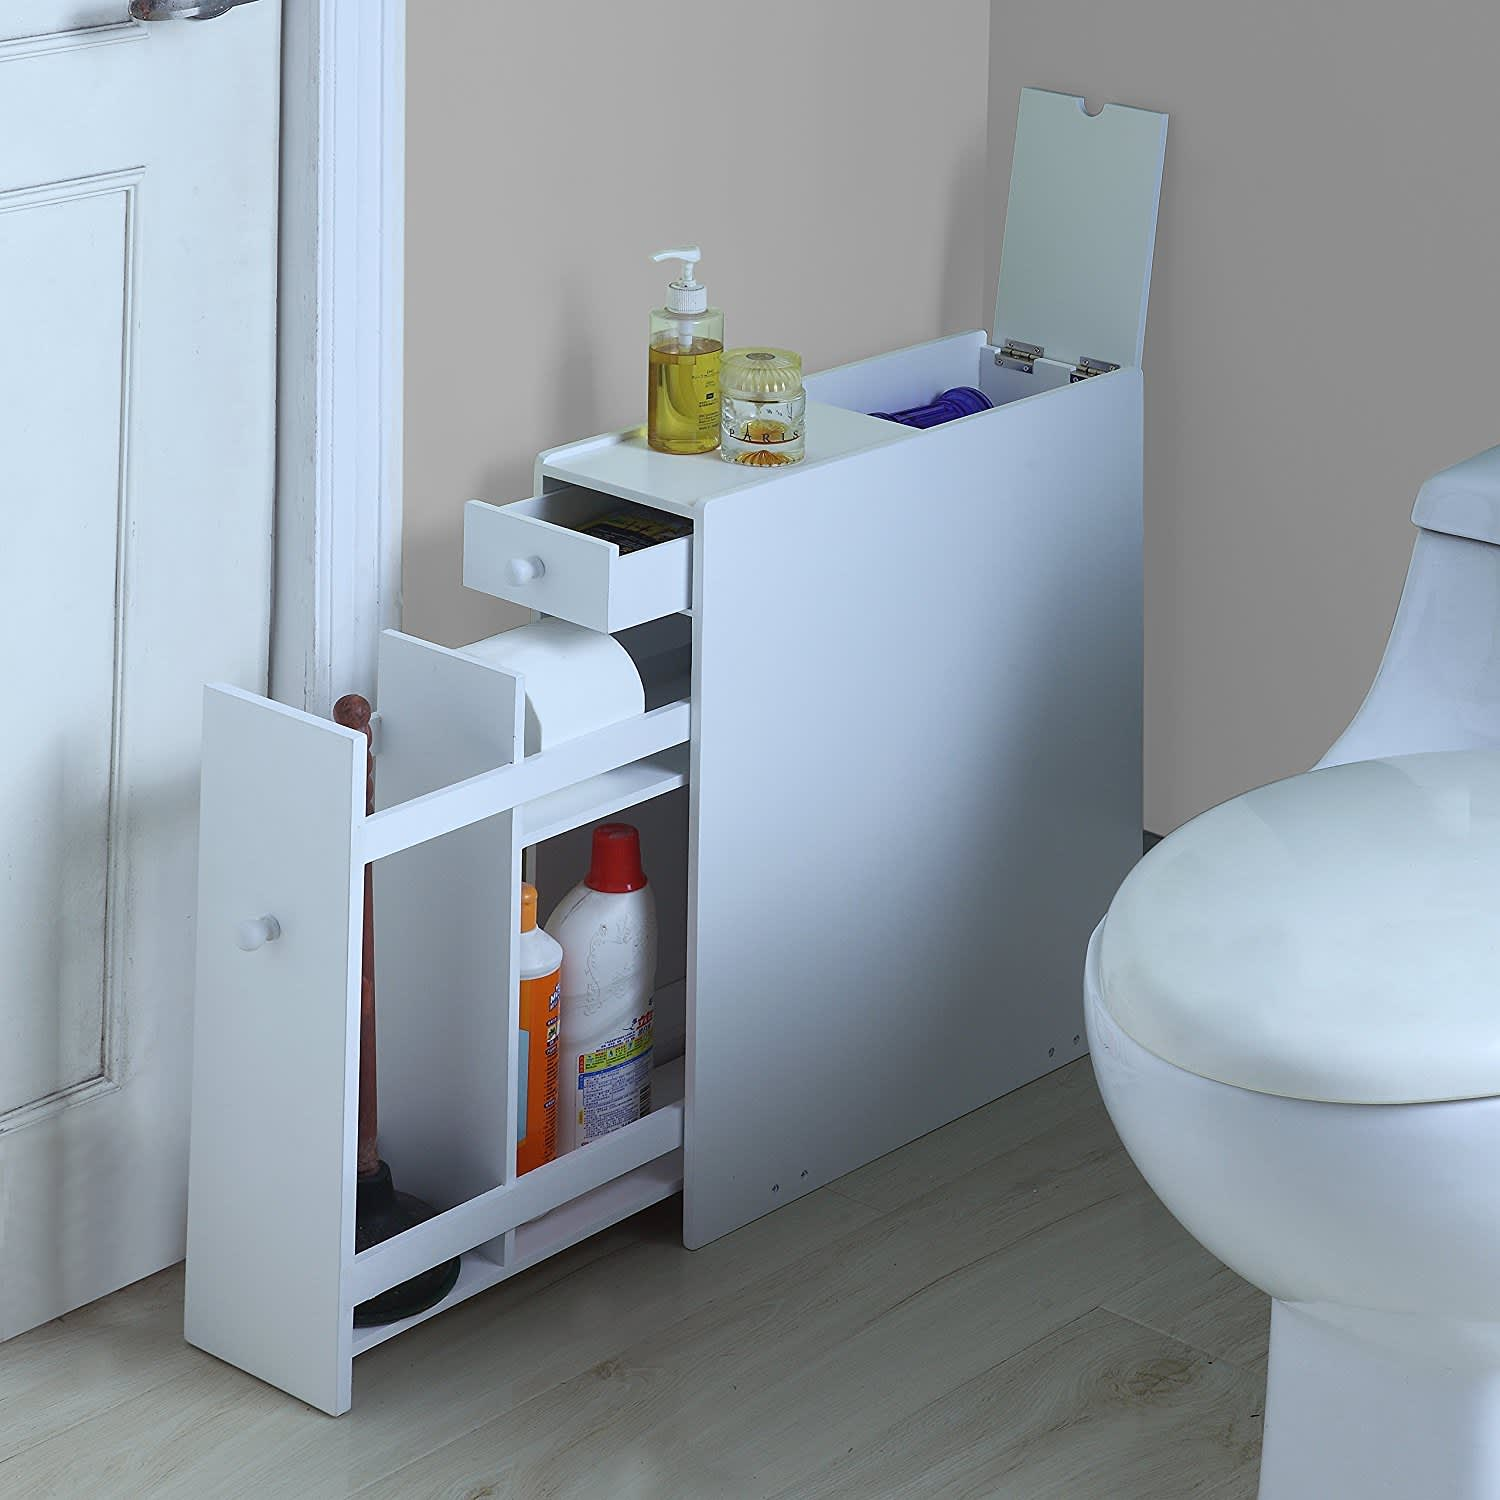 Apartment Bathroom Ideas: Storage For Small Bathrooms